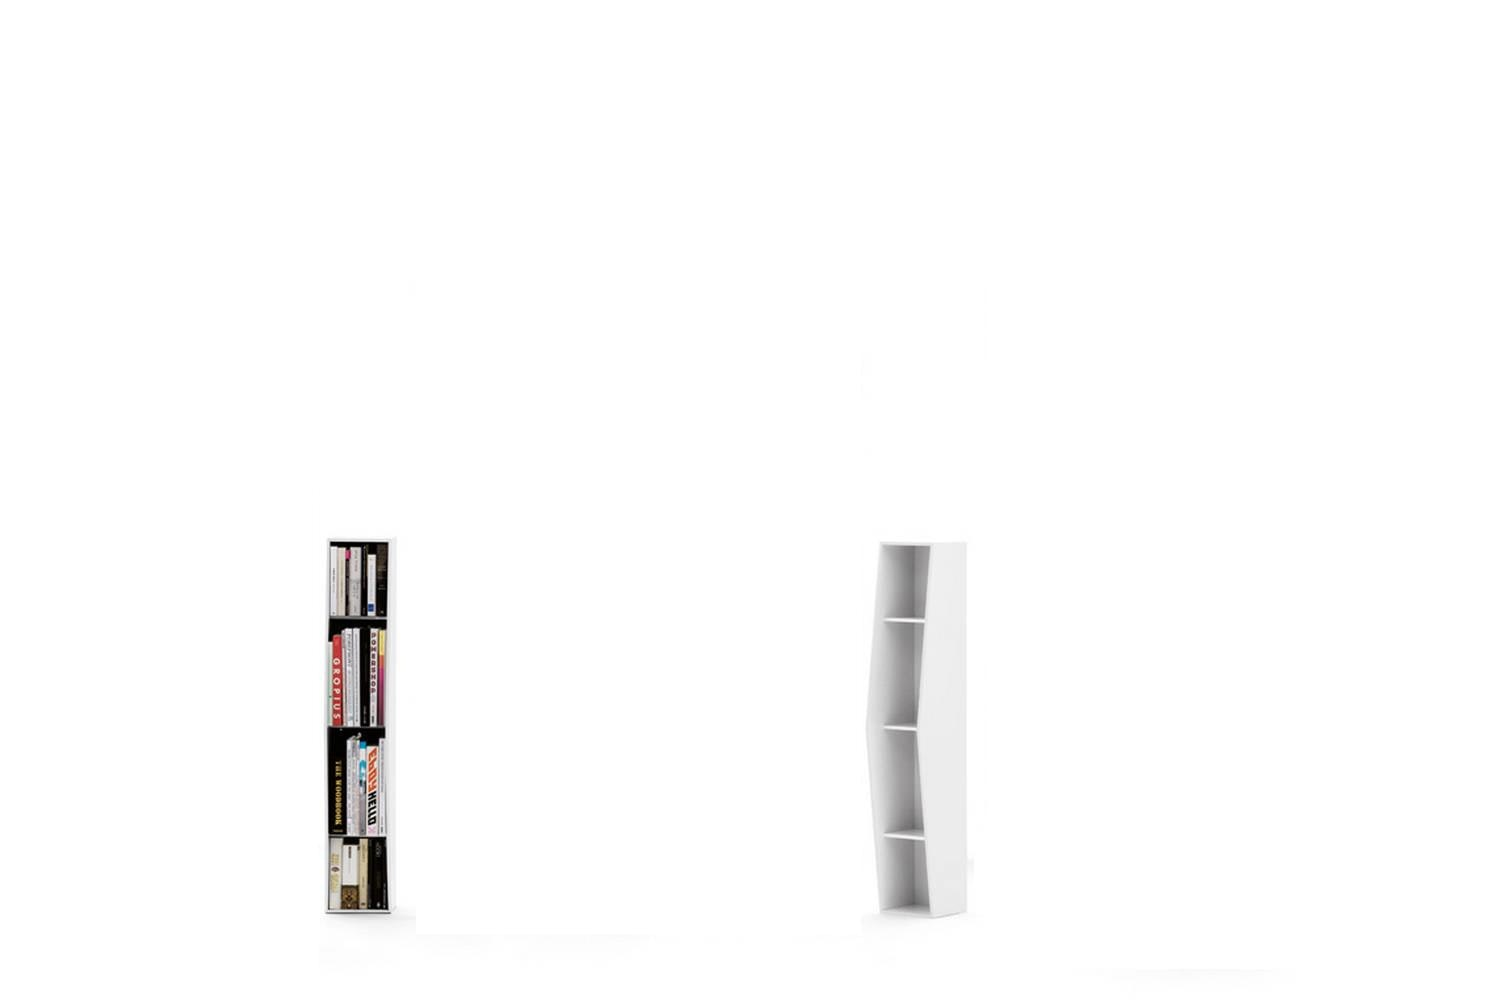 Uptown 3 Shelves Bookshelf by Lapo Ciatti for Opinion Ciatti